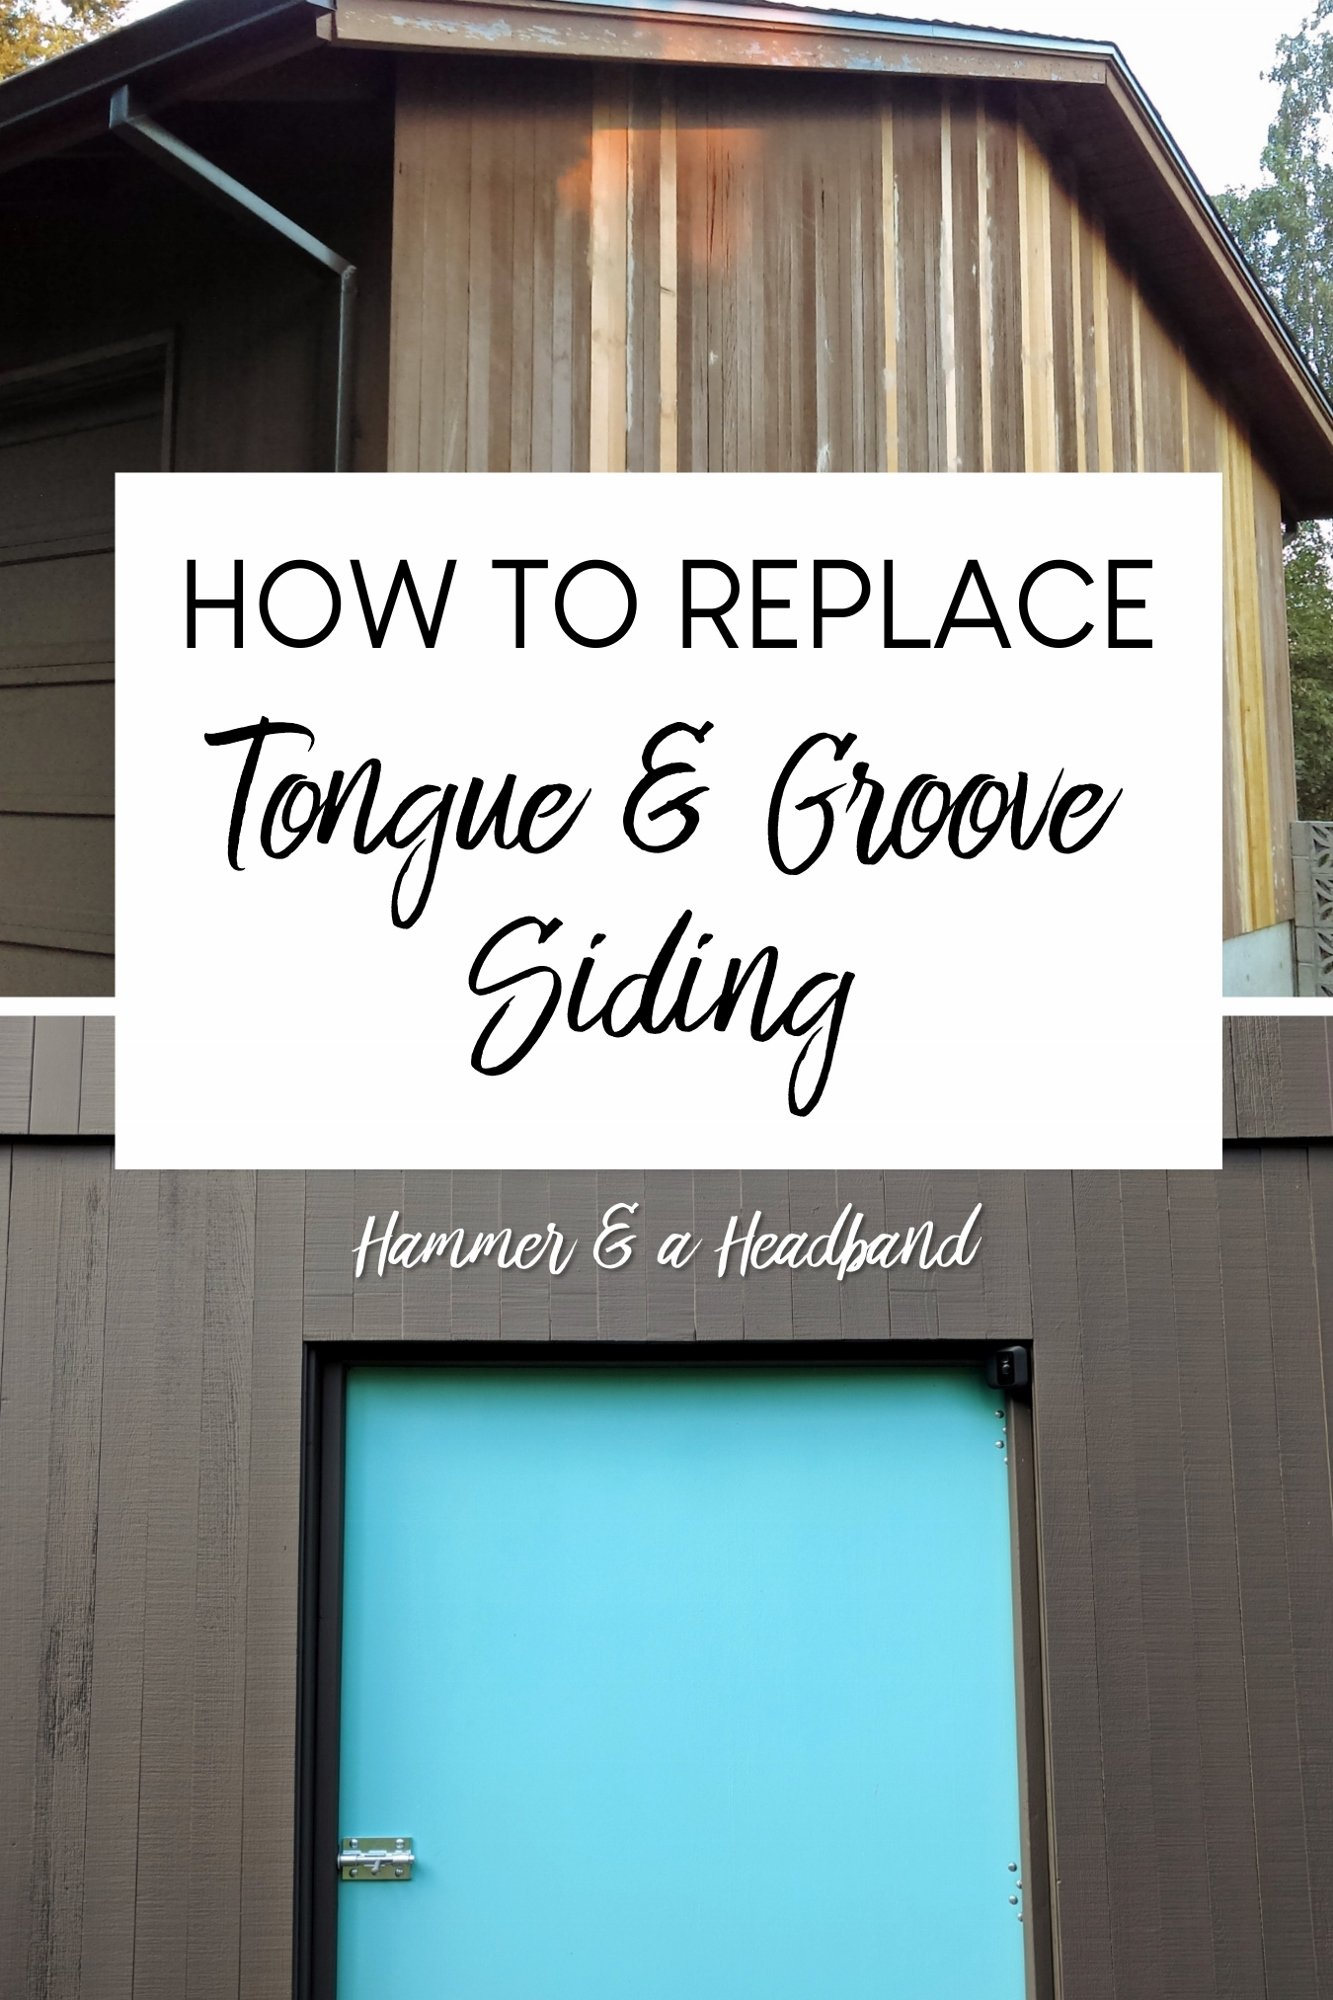 How To Replace Tongue And Groove Siding